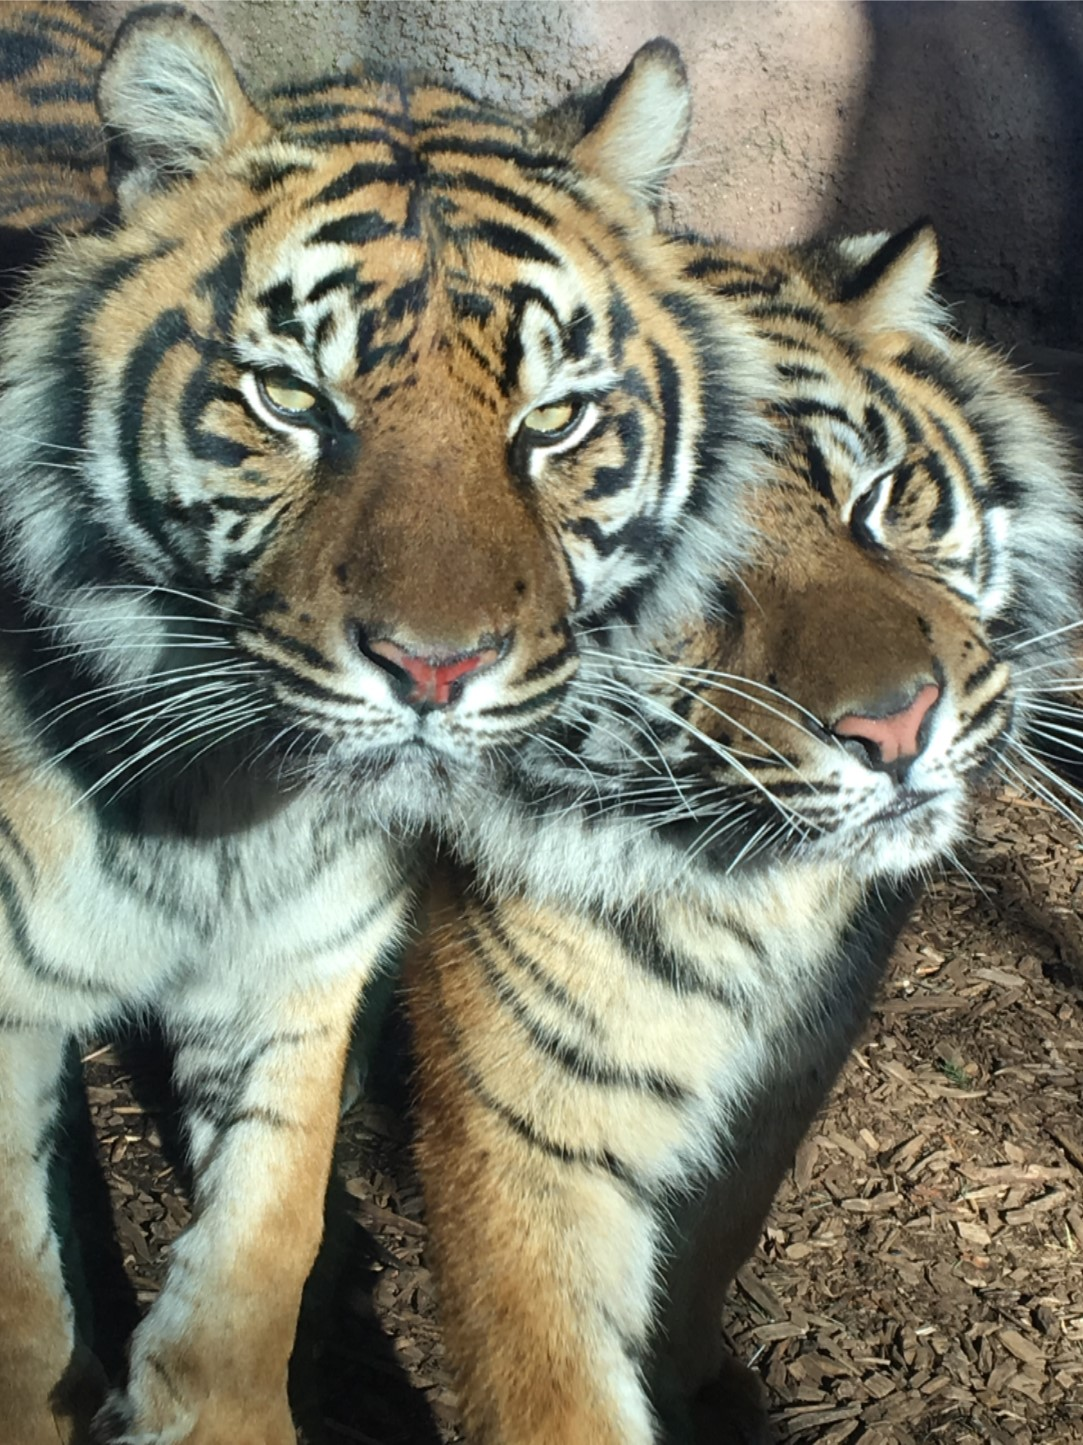 May the Fourth be with You! Three Sumatran Tiger cubs, ChloJo, Shanti, and Raza, were born to mother, Jingga, and father, Rojo, on the fourth of May 2014.